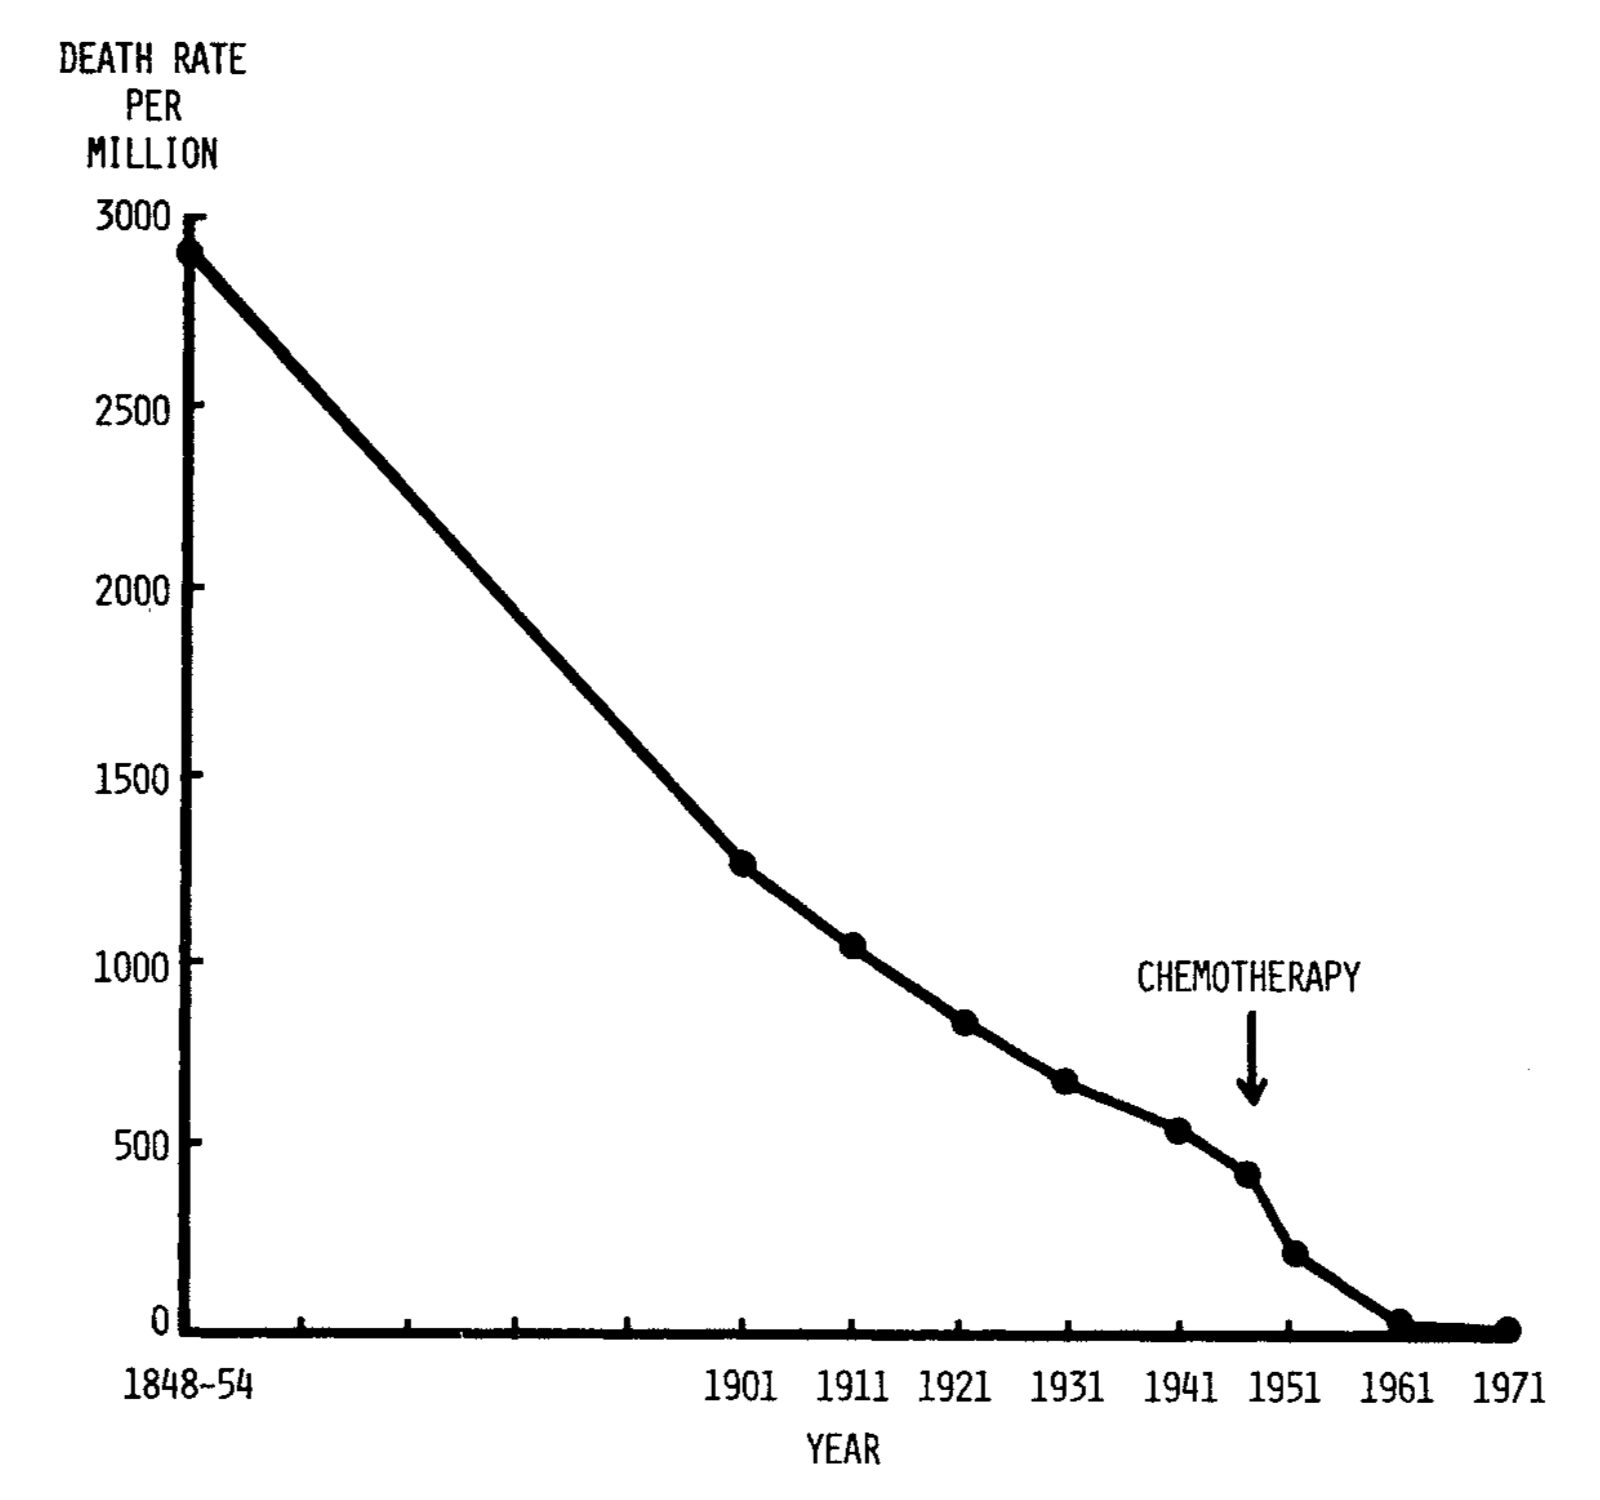 Respiratory tuberculosis mortality, standardized to the 1901 age-sex distribution